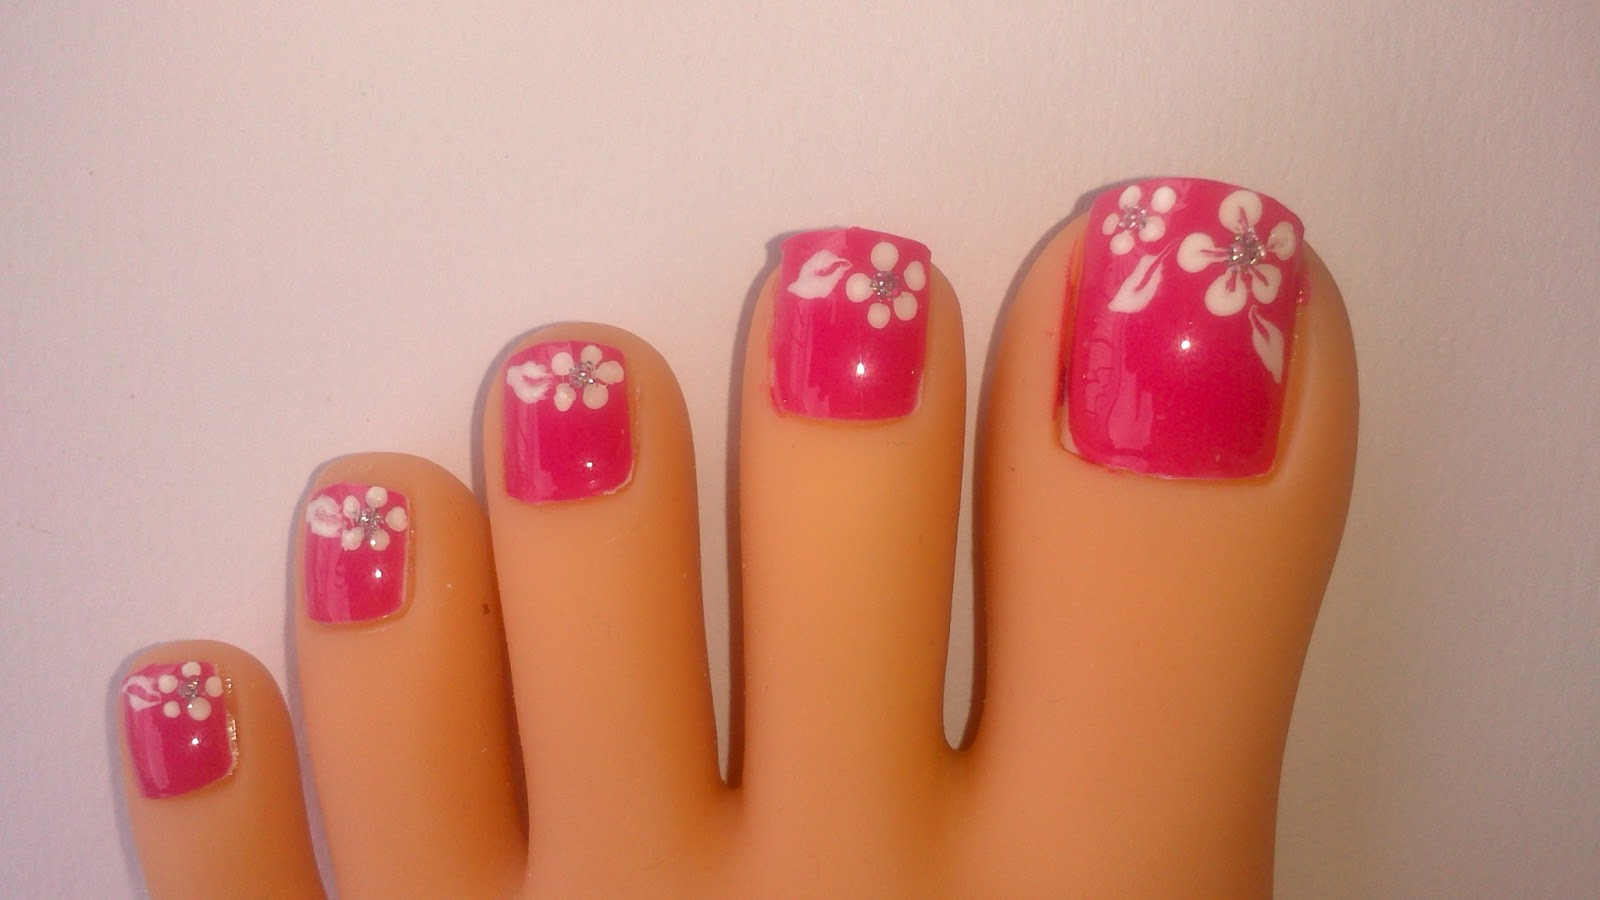 "Lnetsa 's nailart: Toe nail design + short nails version ""Pink with ..."